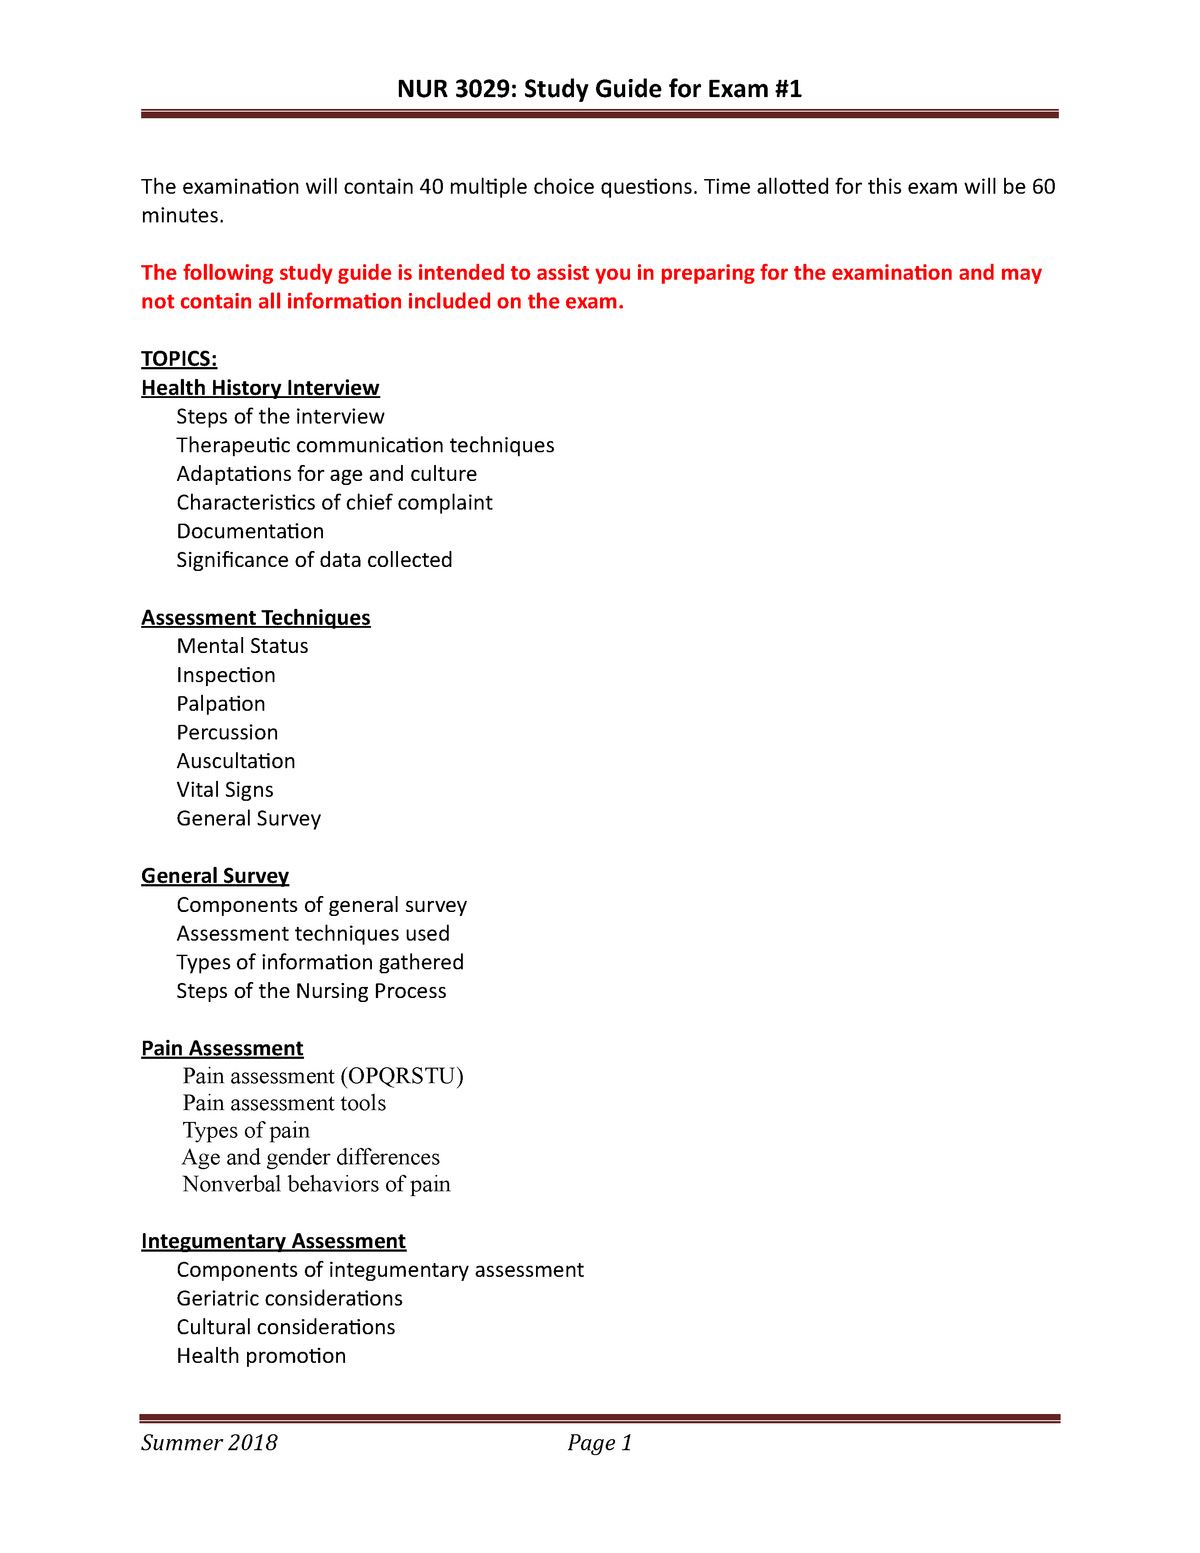 Study Guide For Exam 1 Summer 2018 Nur 3029 Foundations Of Health